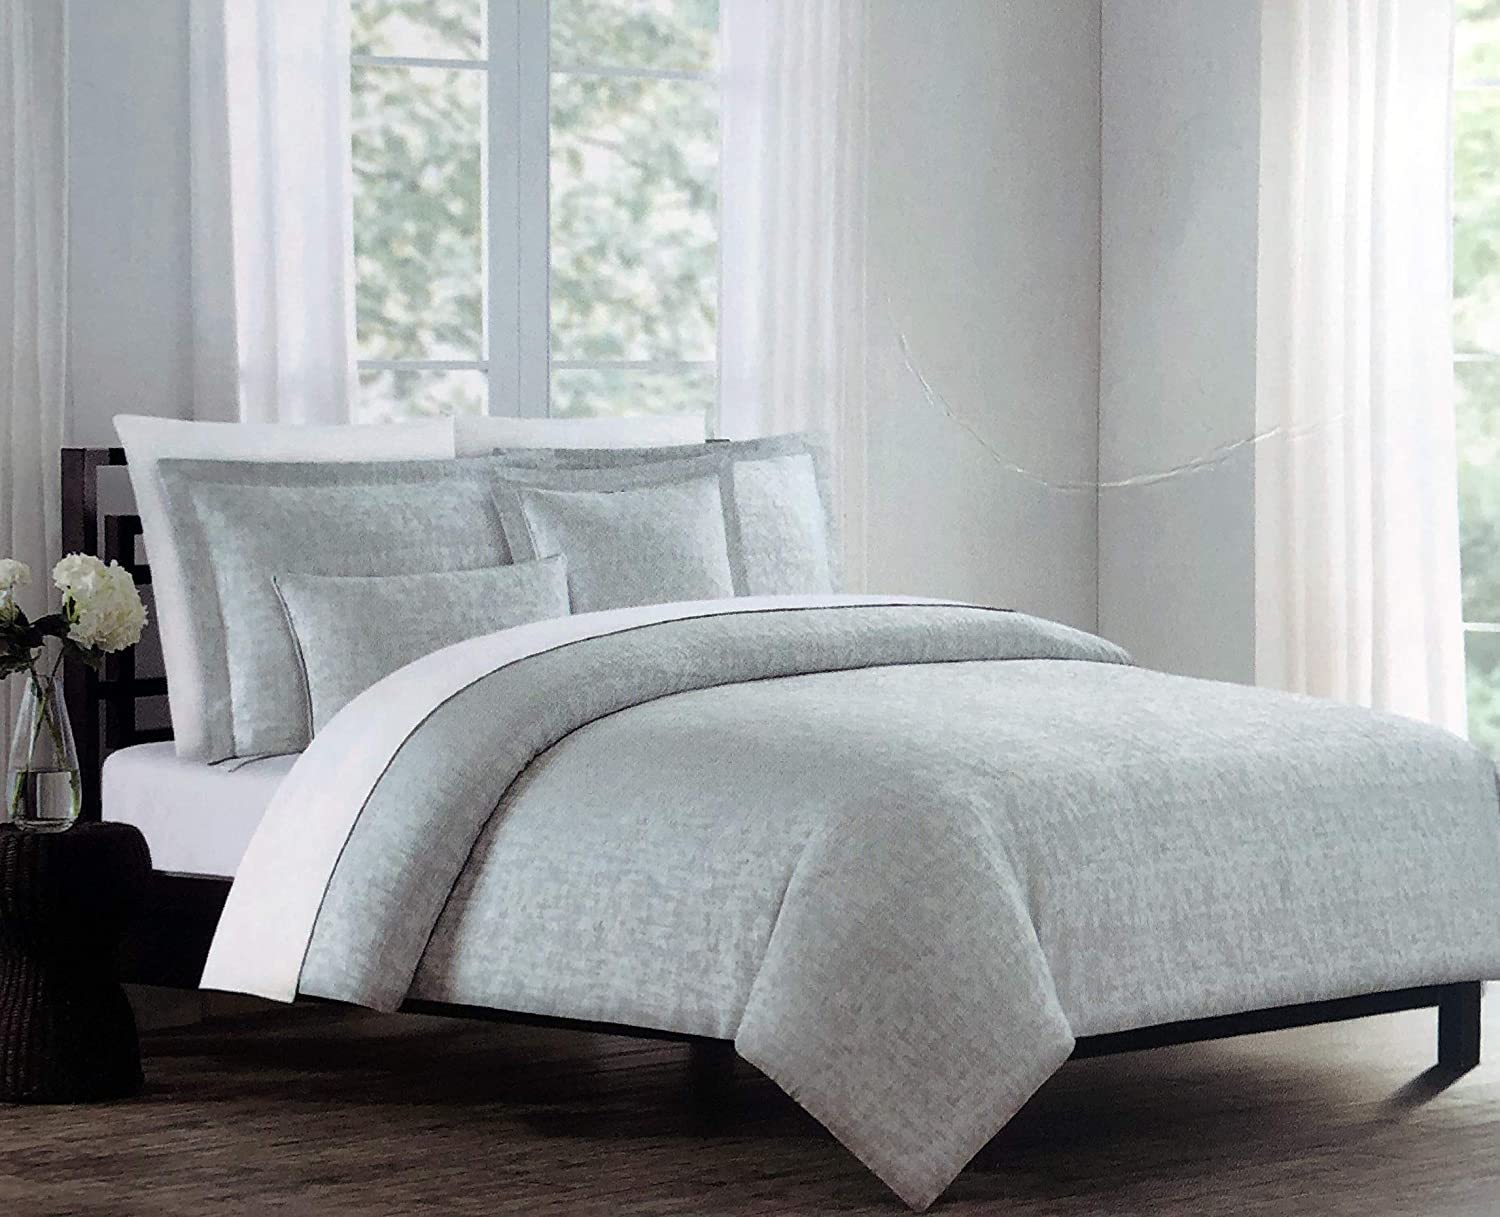 Tahari Home Maison Bedding 3 Piece King Size Luxury Cotton 3 Piece Duvet Comforter Cover Shams Set Solid White with Embroidered Textured Cream//Off-White Medallions